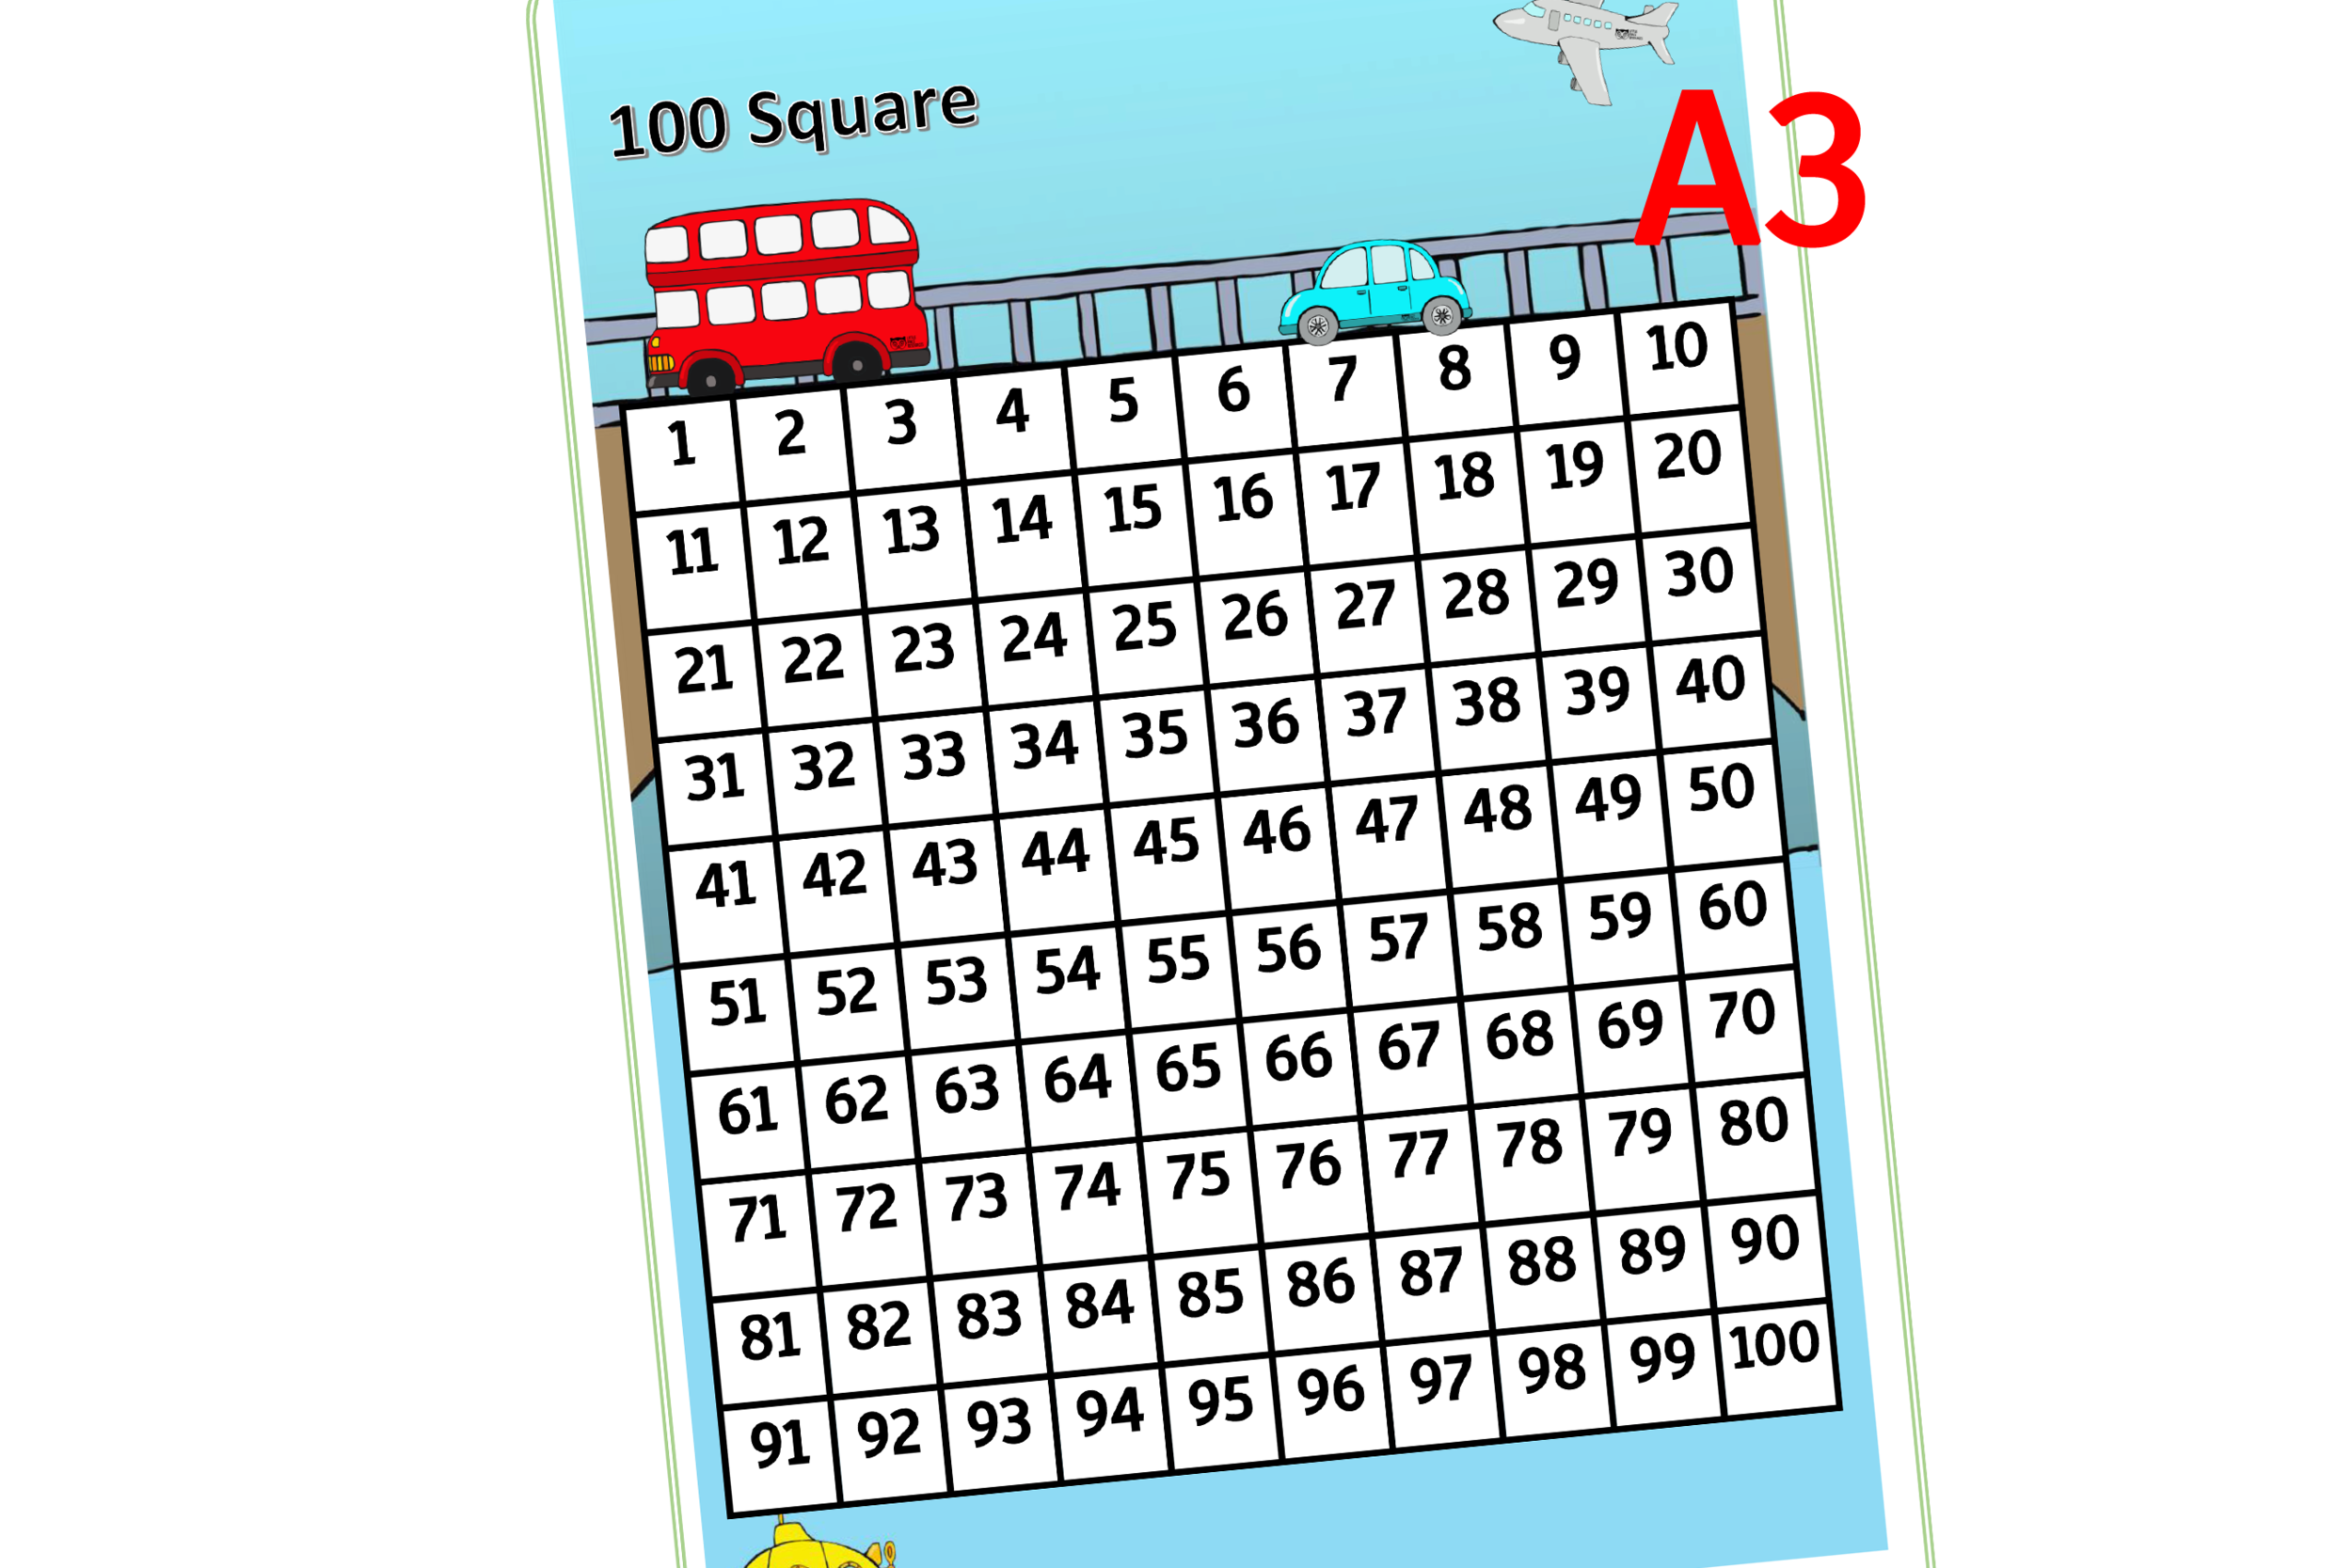 VEHICLE 100 SQUARE - A3